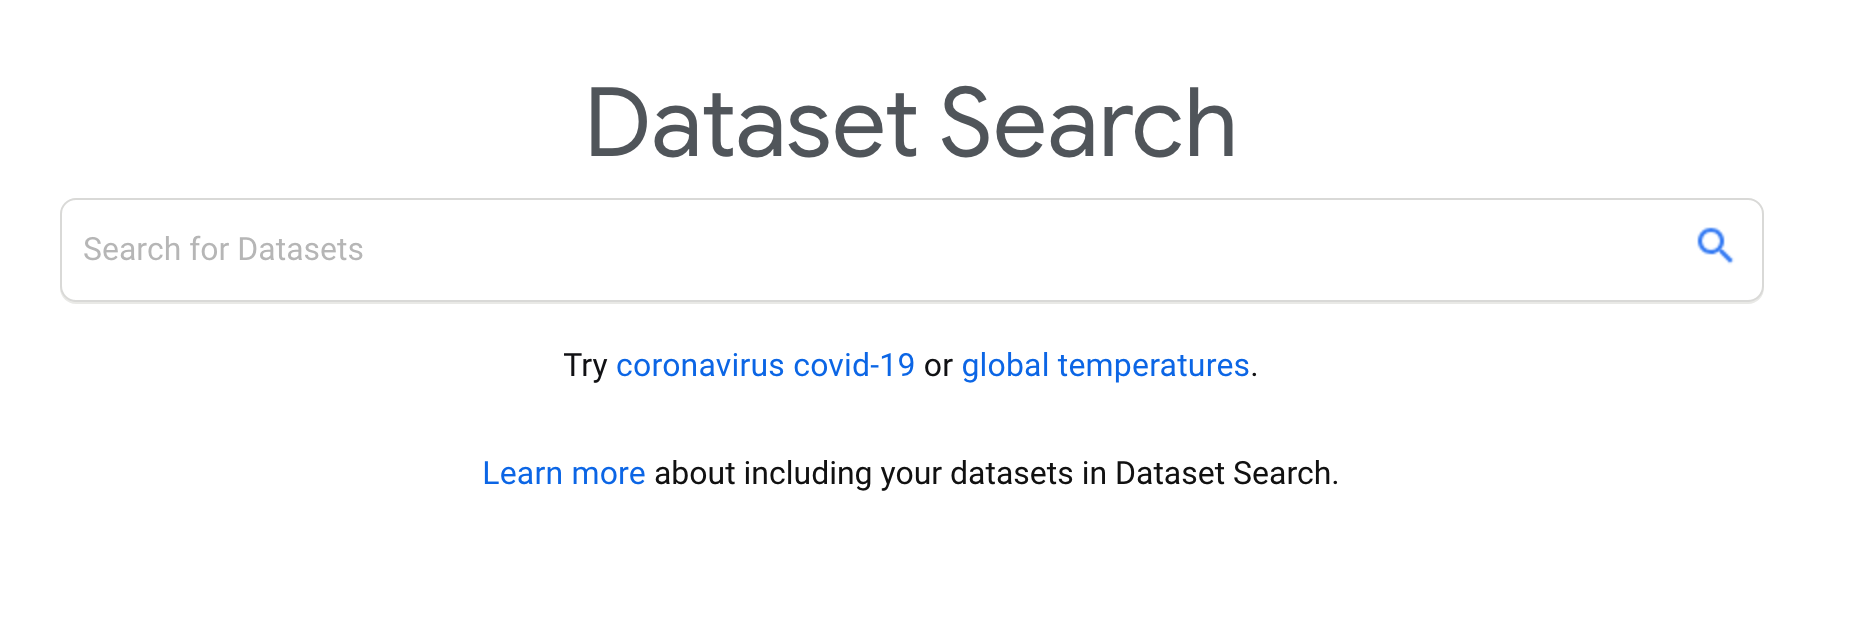 screenshot of the search bar for Google Dataset Search